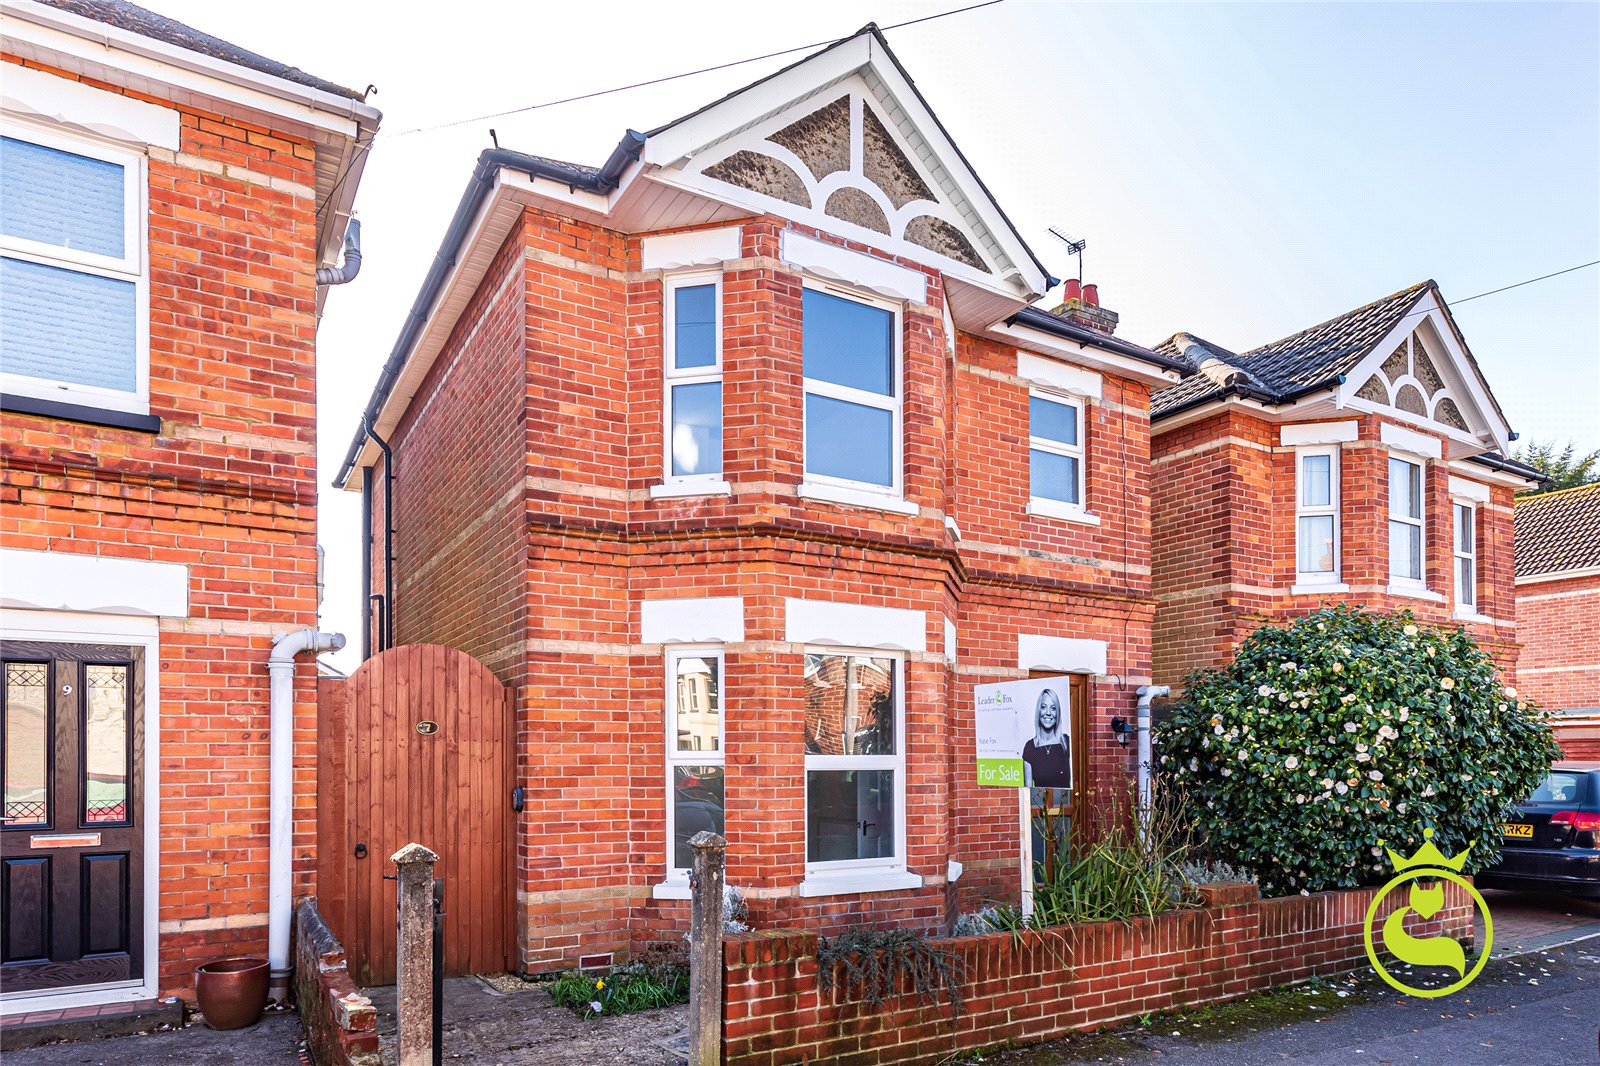 3 bed house for sale in Evelyn Road, Moordown - Property Image 1